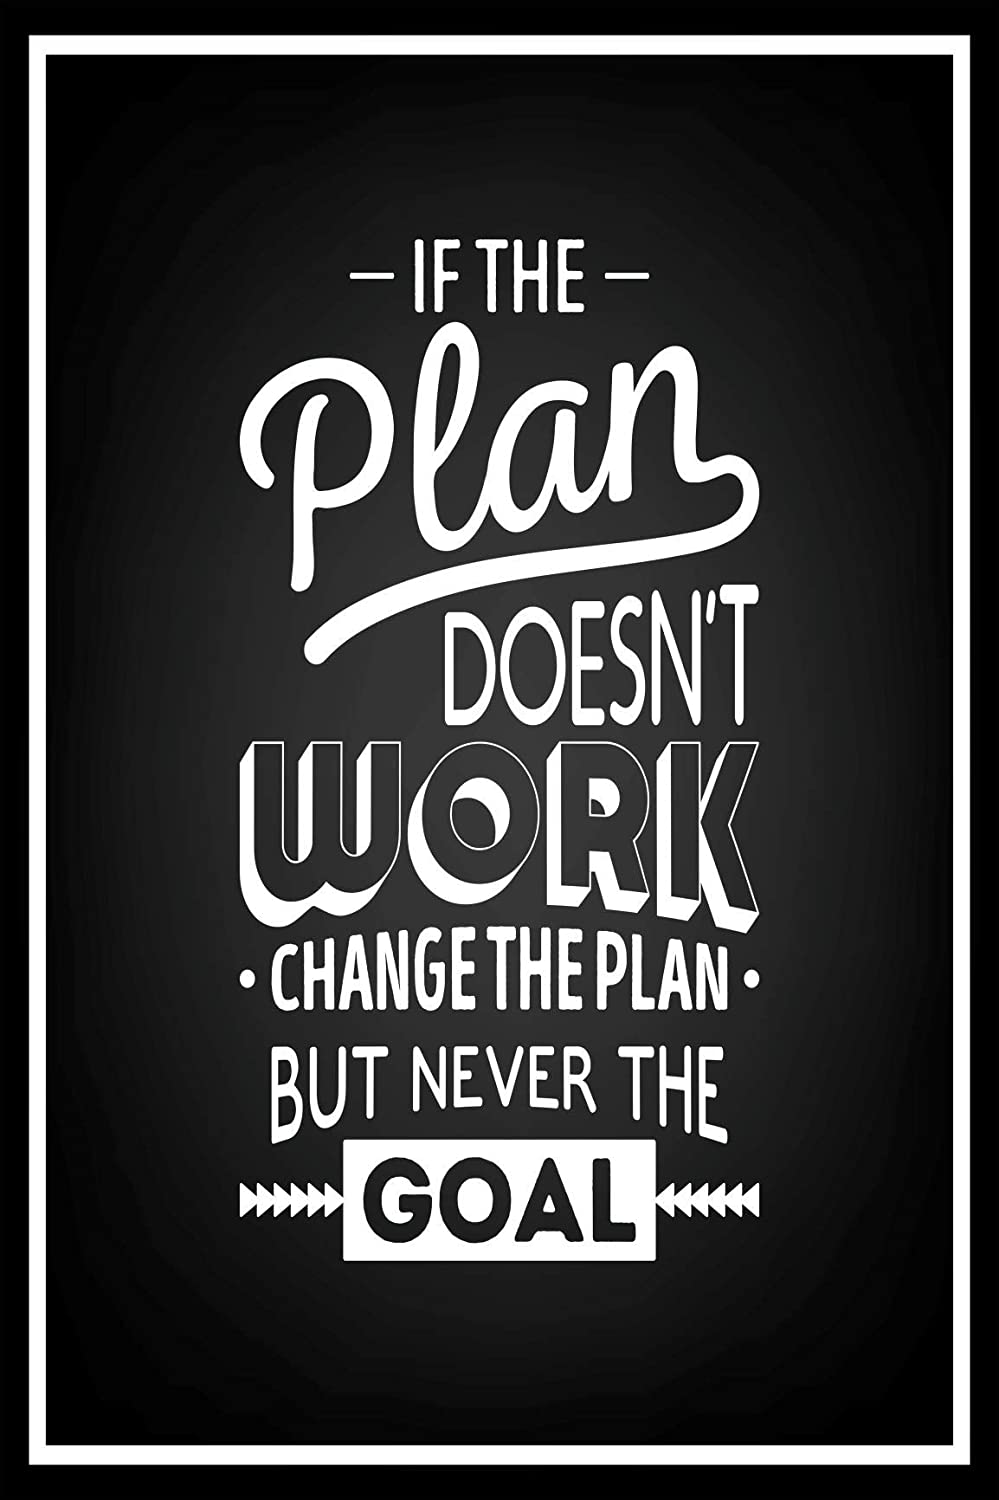 Boomeks - Motivational Quotes, Typographical Background Posters - Poster Printing - Wall Art Print for Home Office Decor - Plan - 32X48 inches